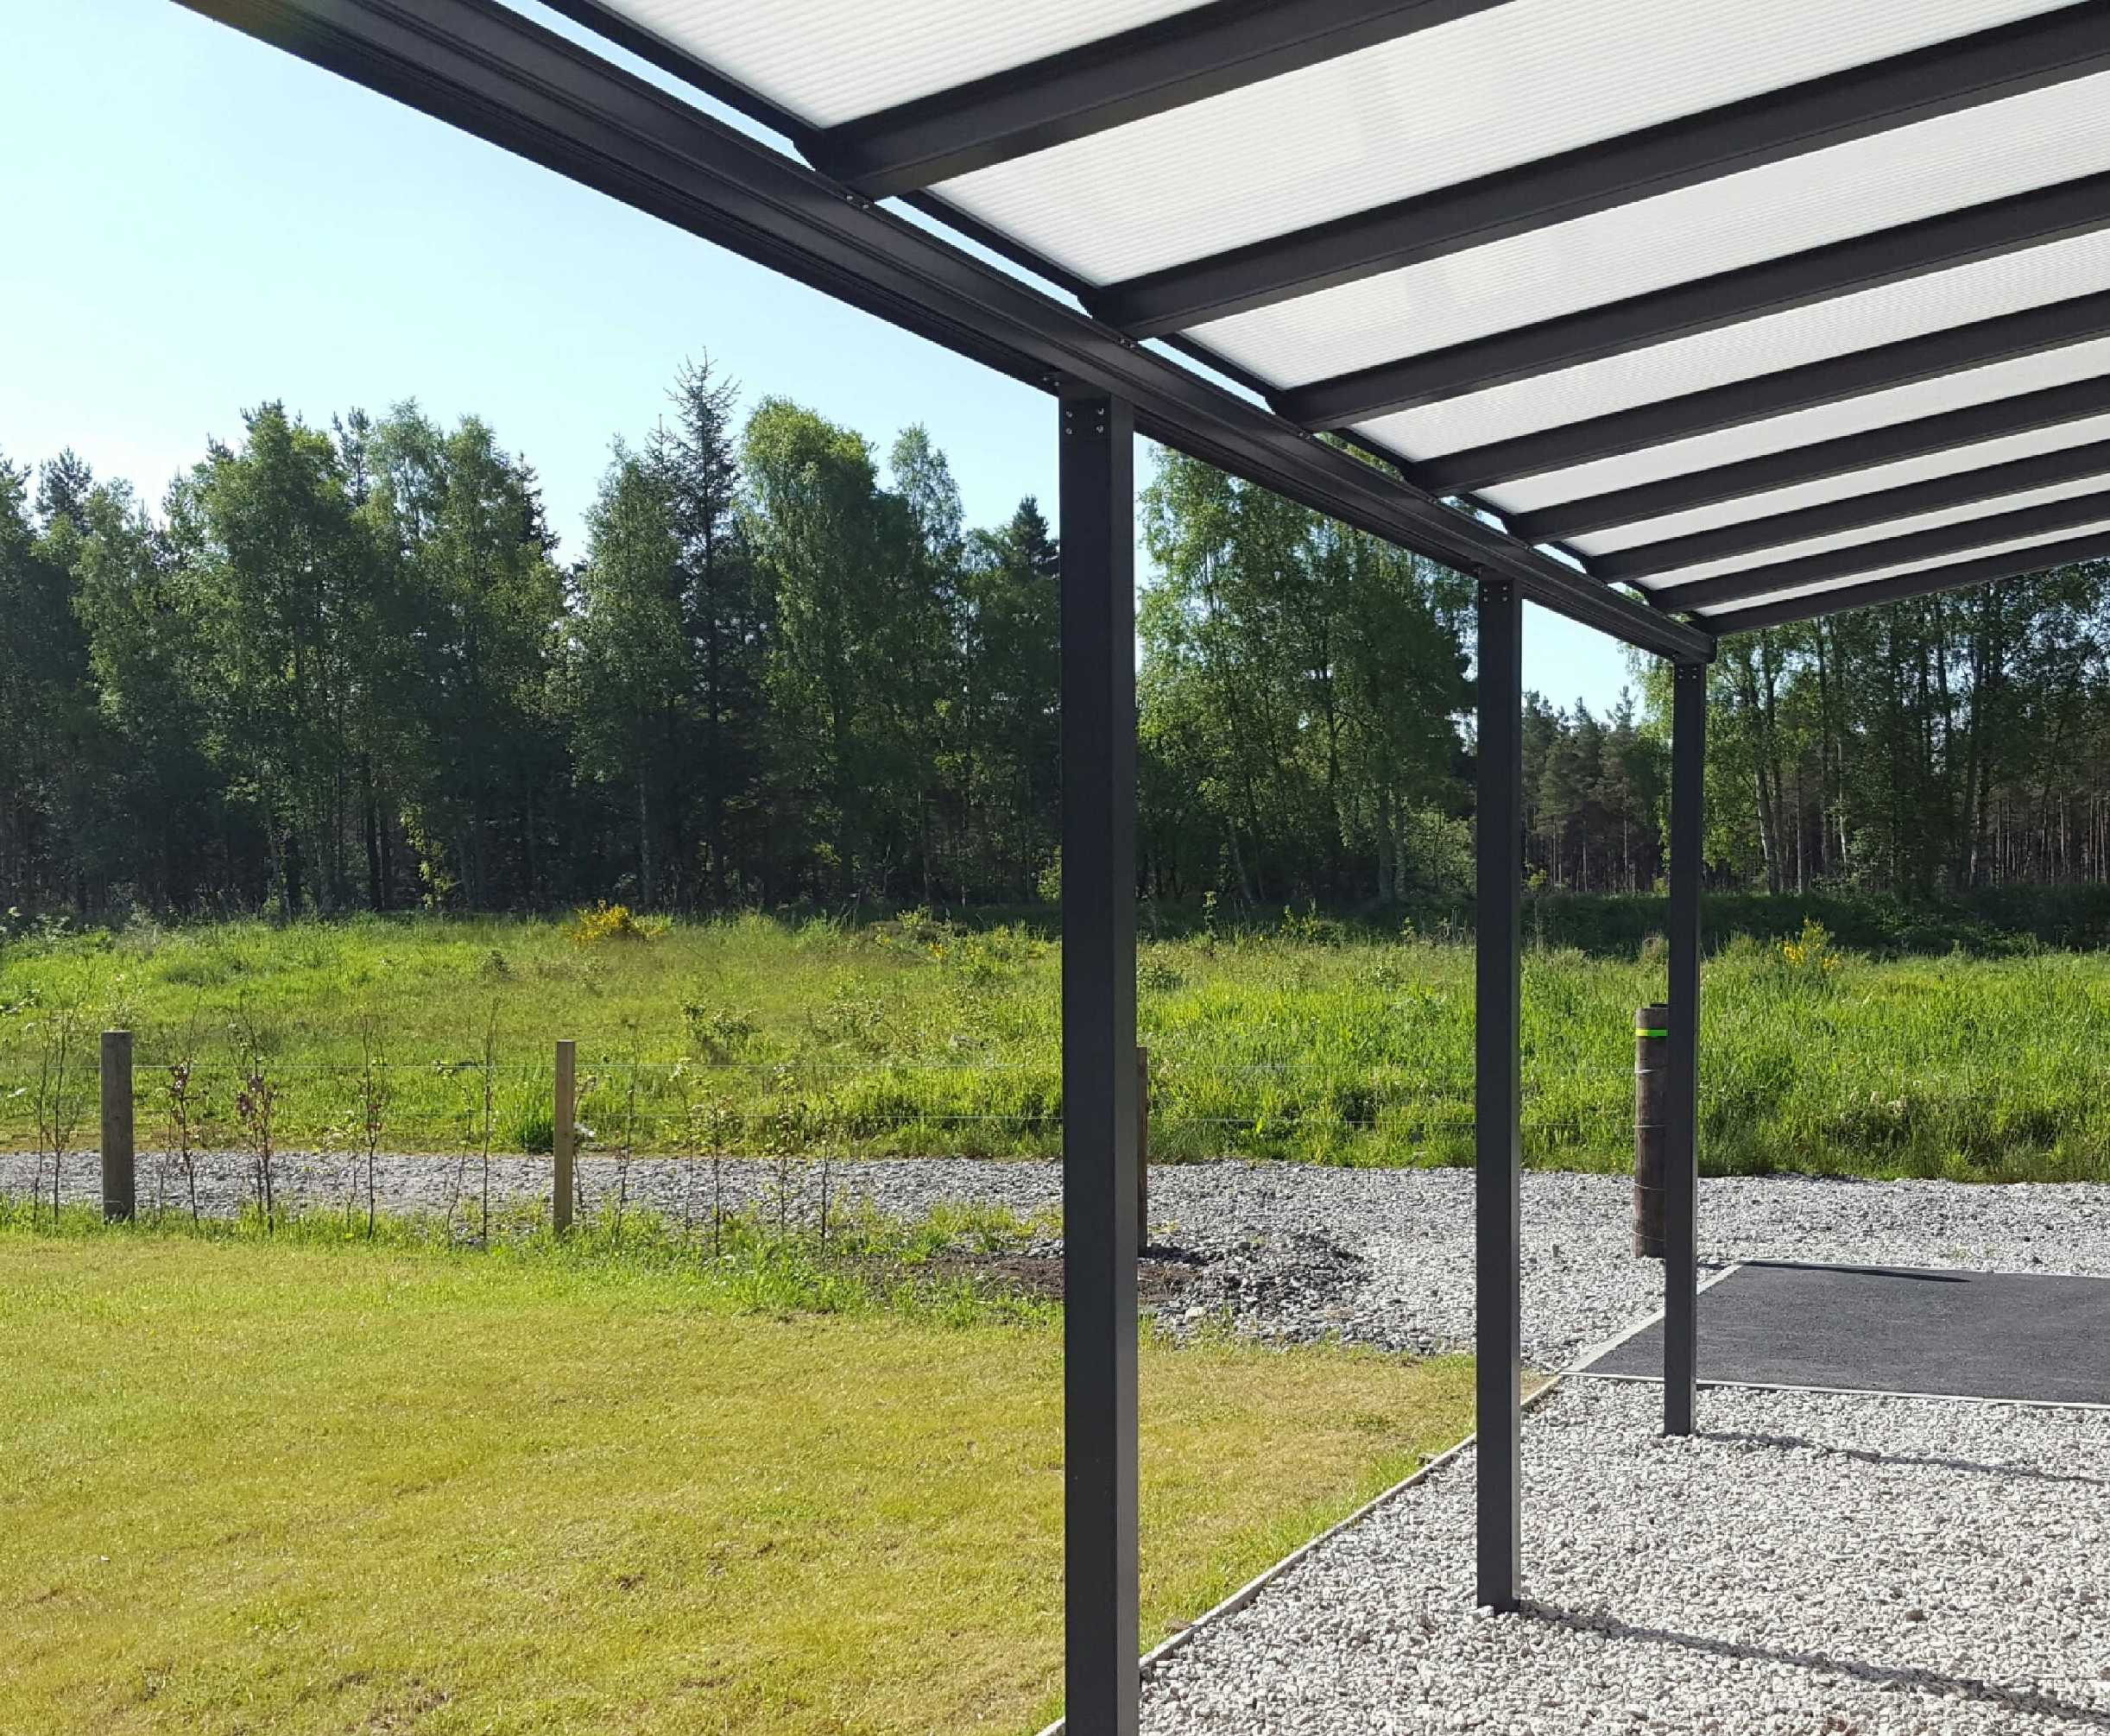 Omega Smart Lean-To Canopy, Anthracite Grey, 16mm Polycarbonate Glazing - 6.0m (W) x 3.0m (P), (3) Supporting Posts